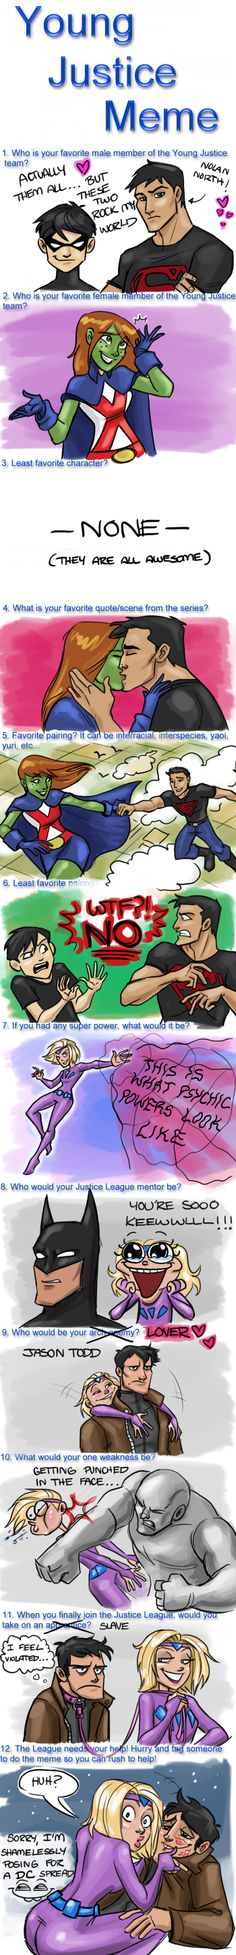 Young Justice Meme by *WendyDoodles on deviantART